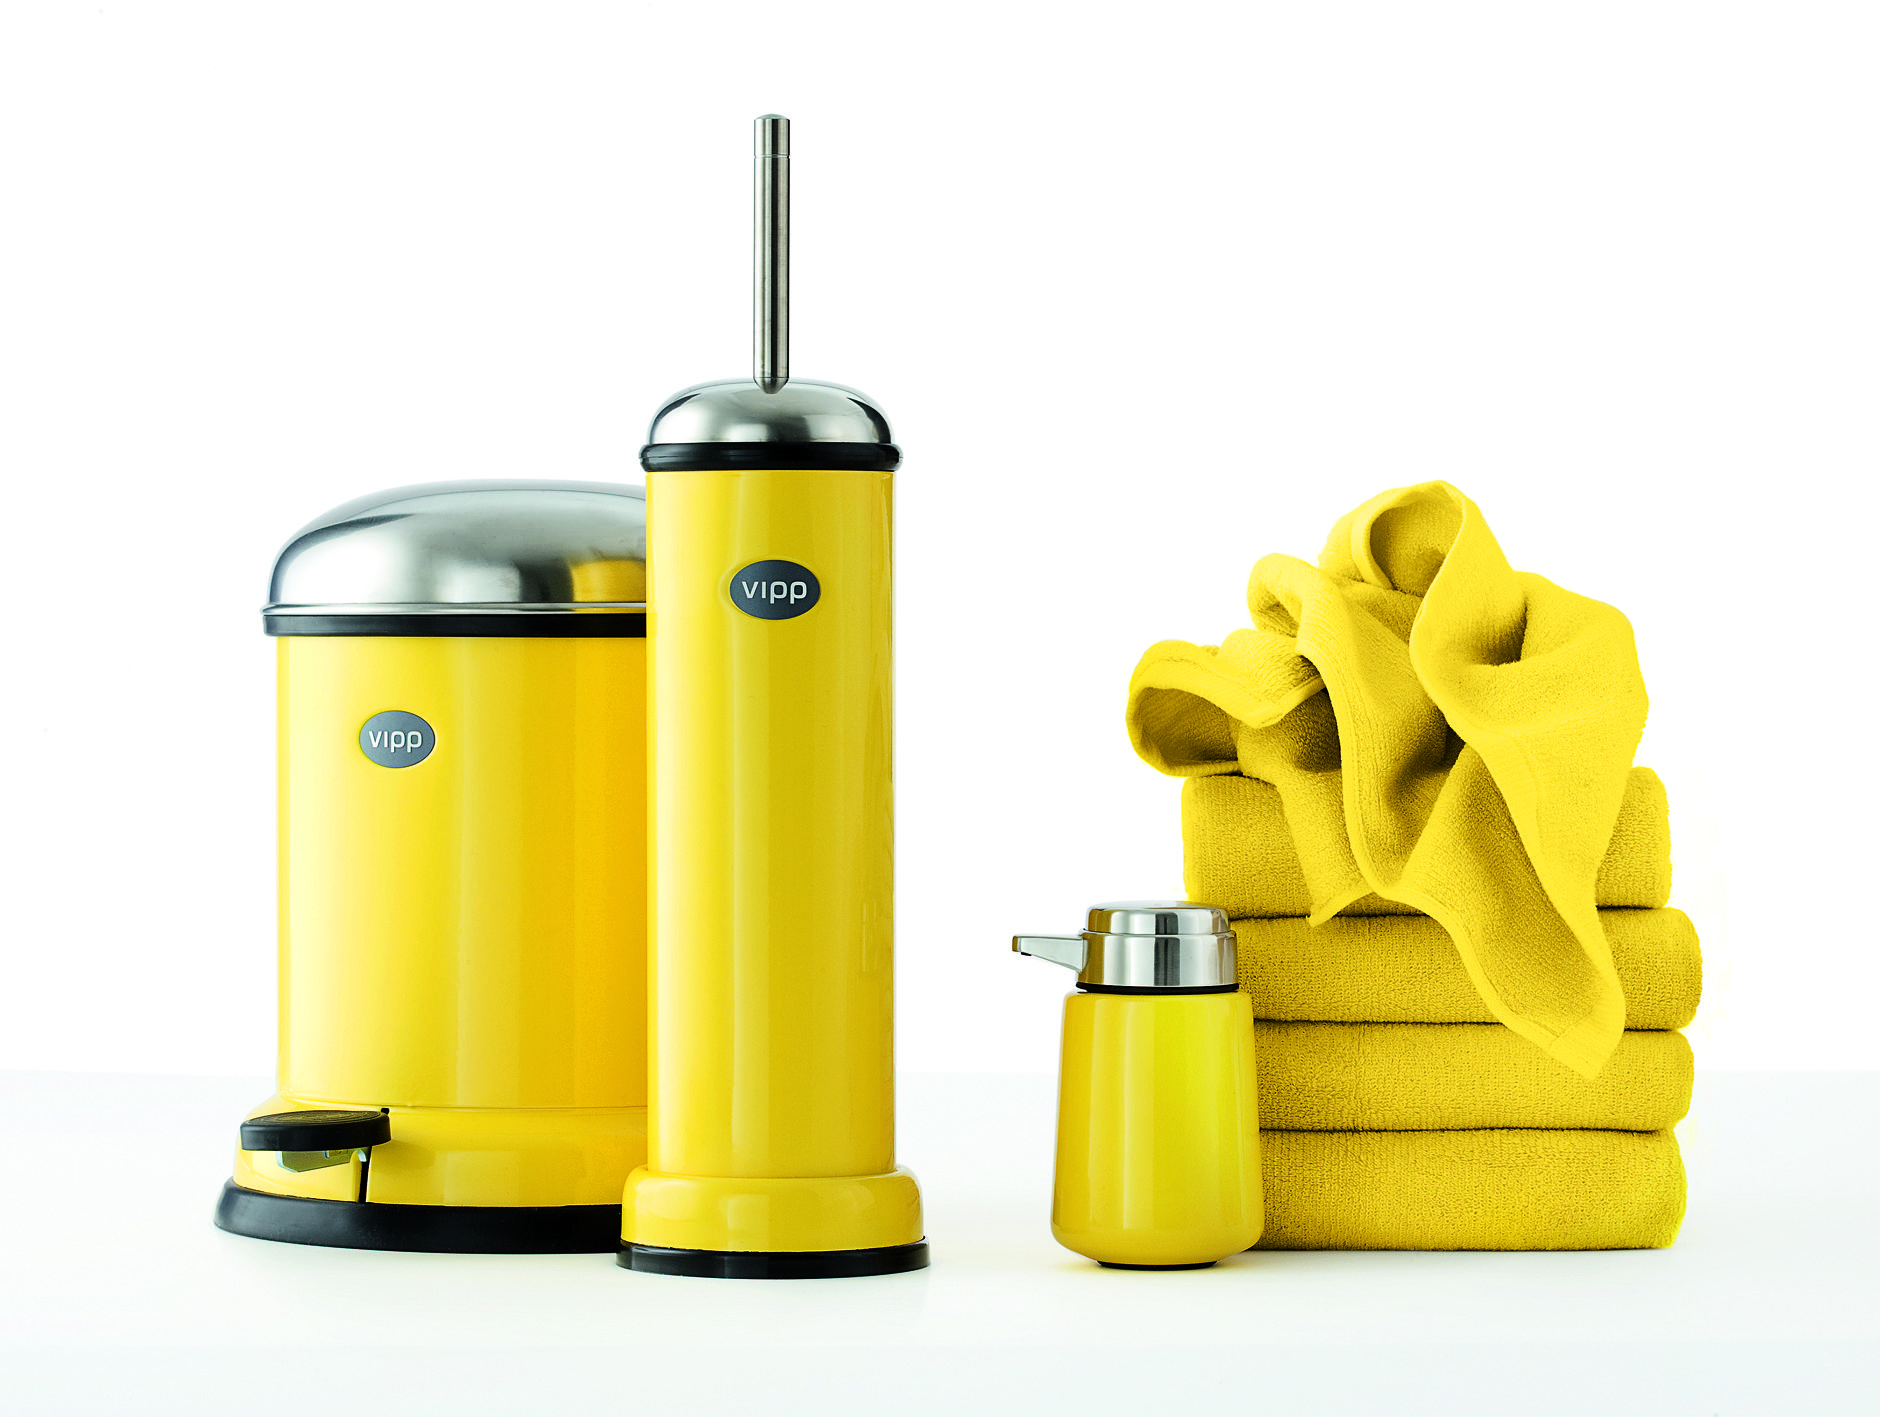 yellow bathroom accessories 1880 1417